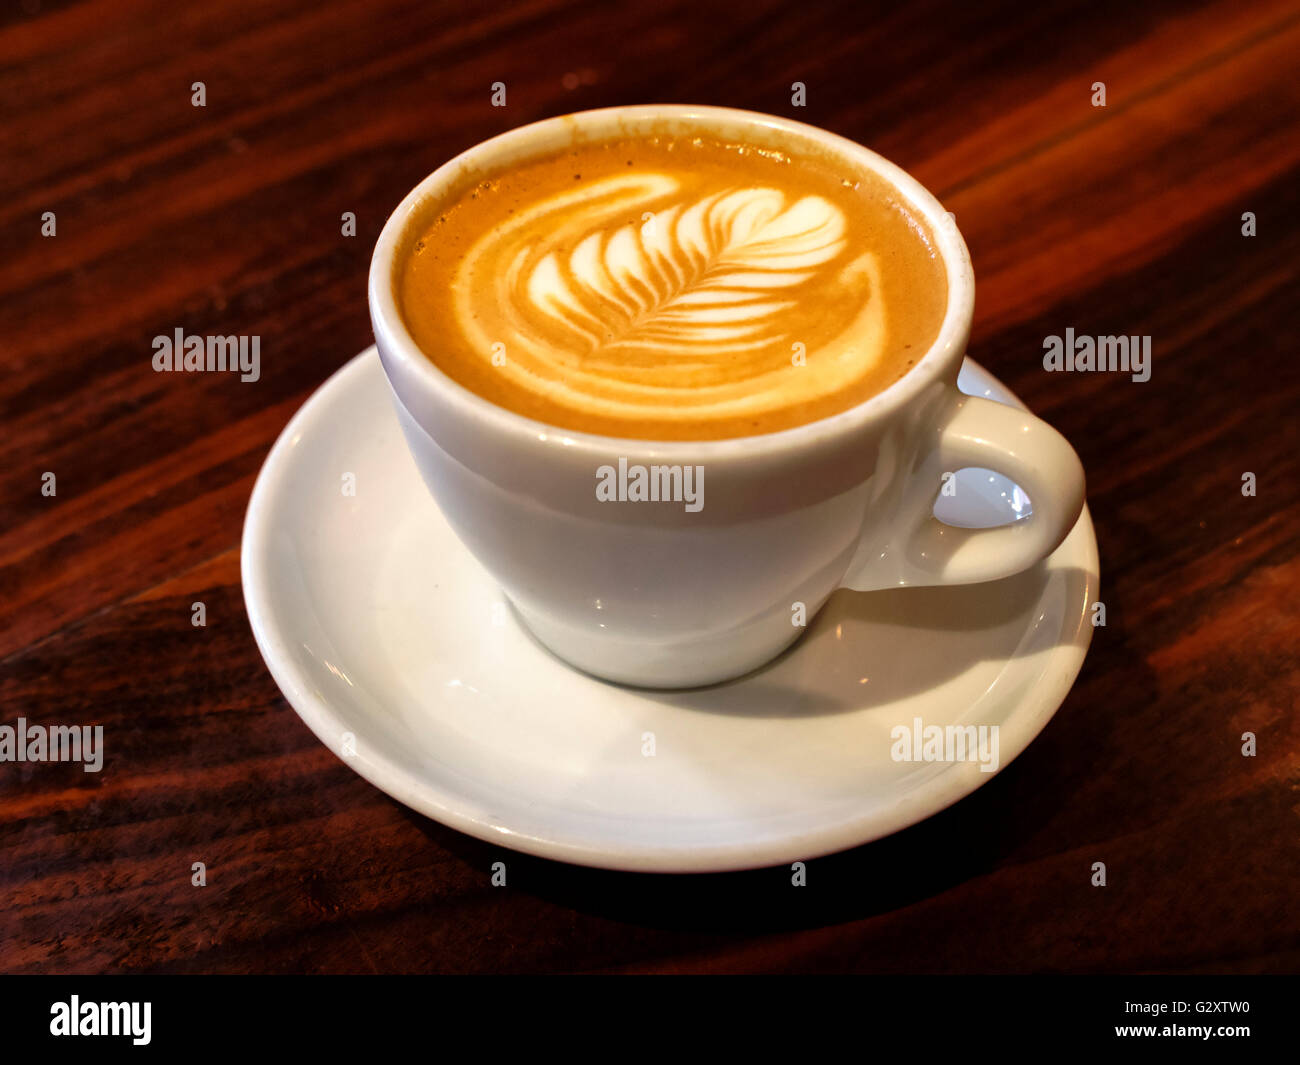 Cappuccino in a white cup and saucer - Stock Image